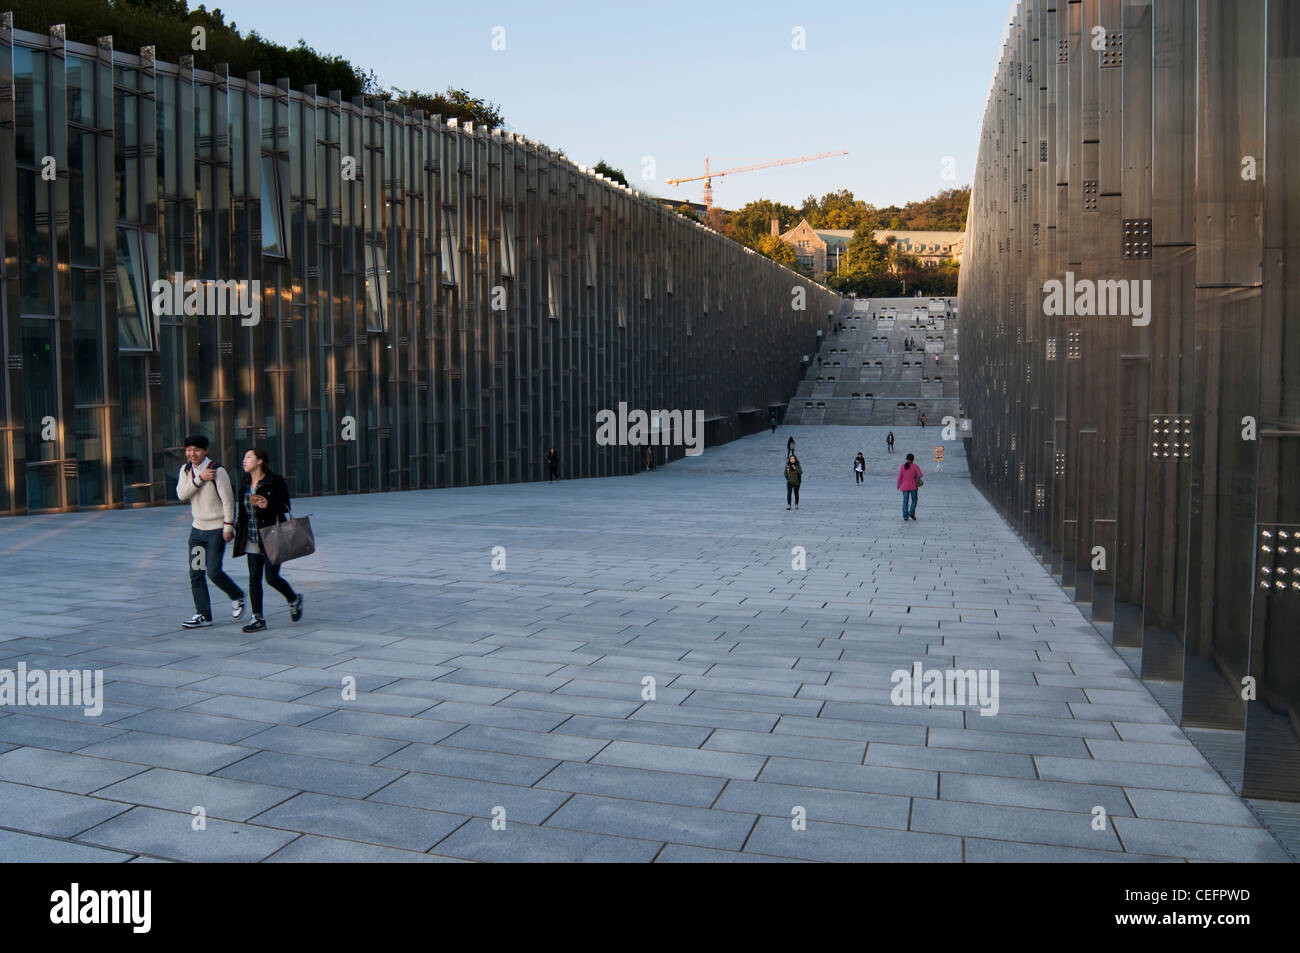 Unusual architecture of Library building in Ewha Womans University campus, Seoul, Korea - Stock Image